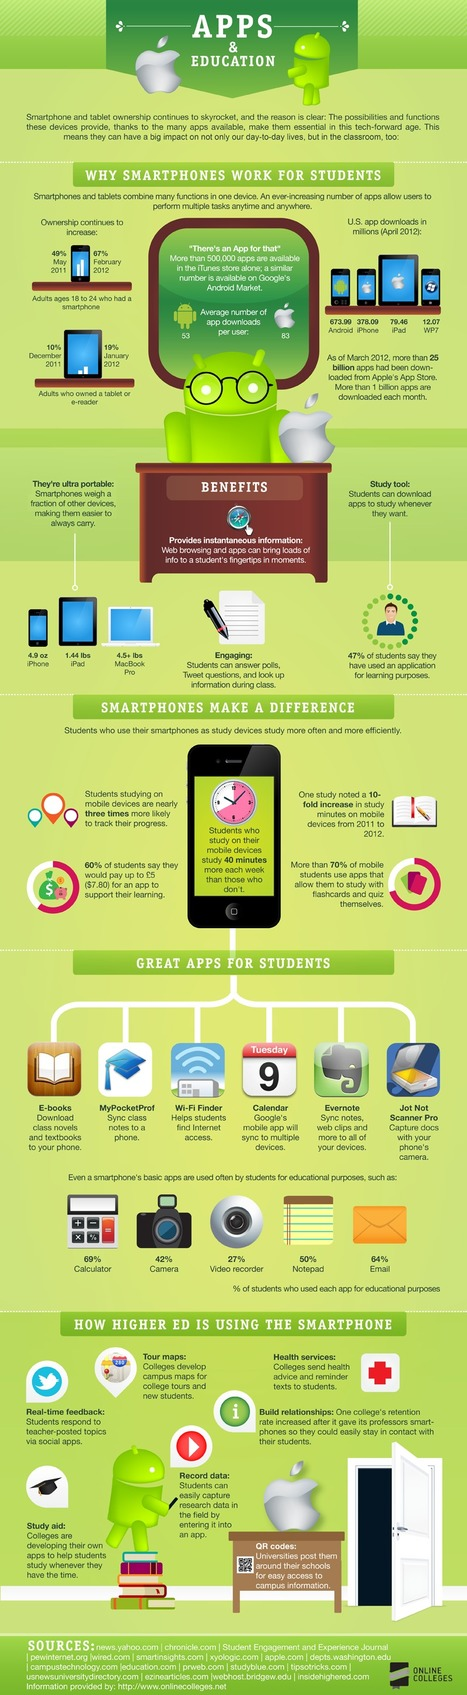 Infographic: Apps and Education | Libraries & Technology | Scoop.it